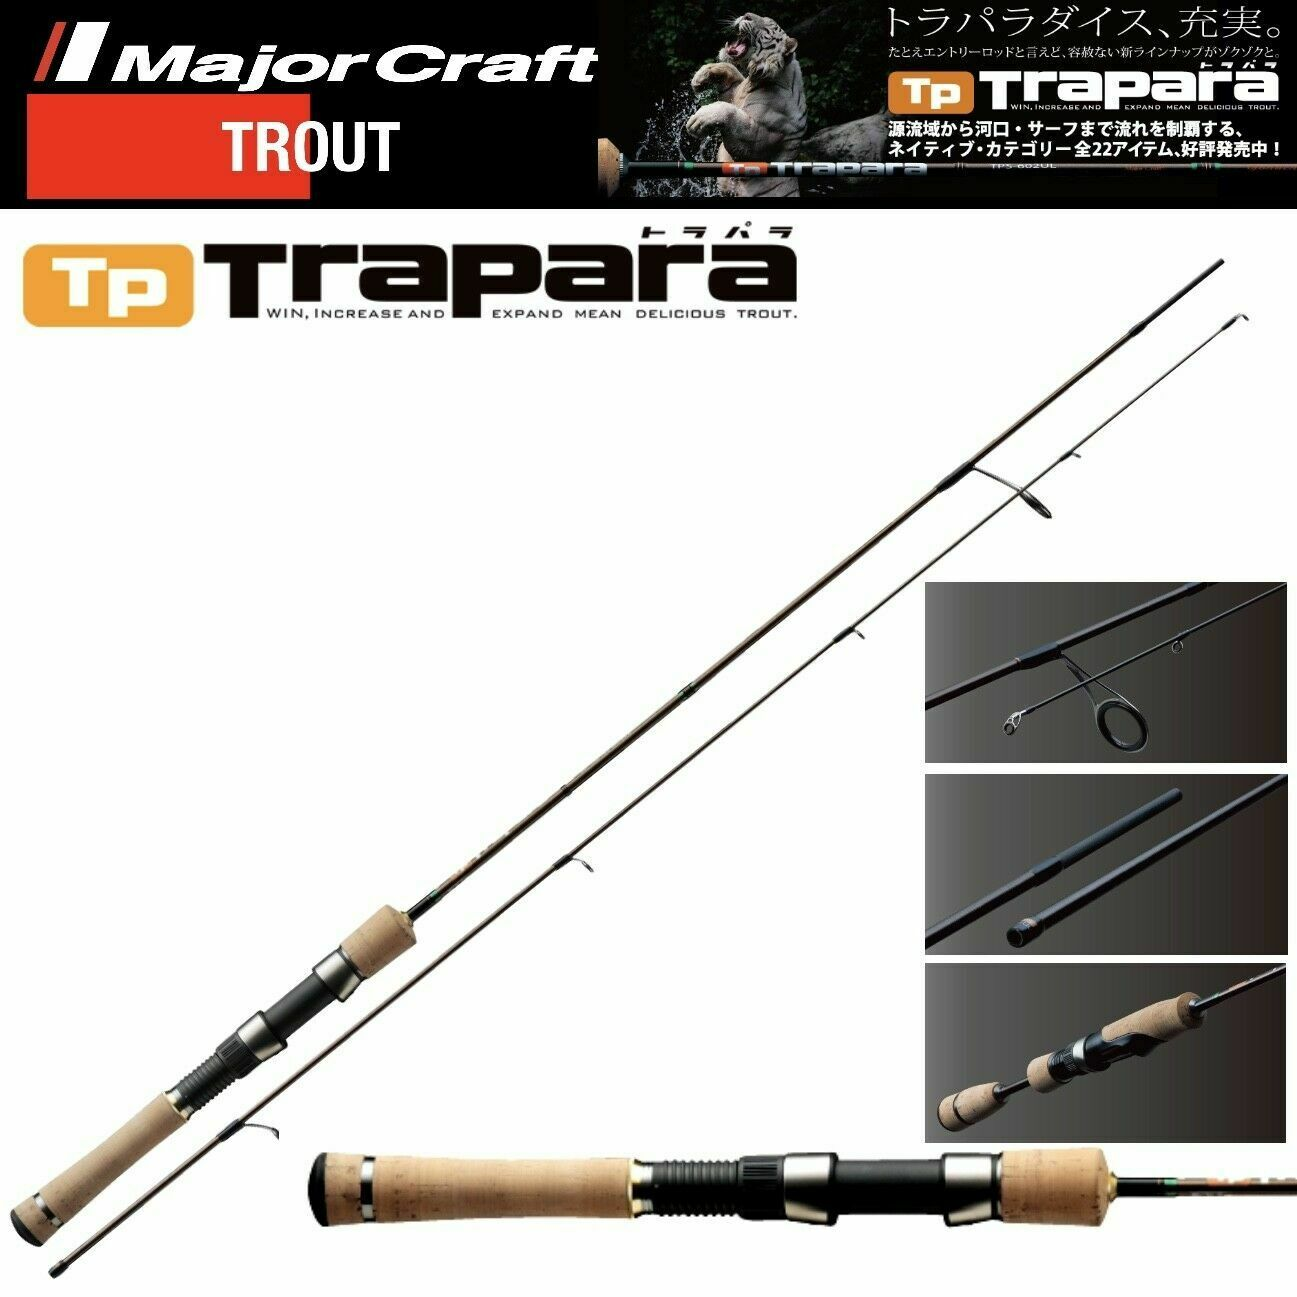 Majorcraft Trapara Native Trout Stage TXS - 602L